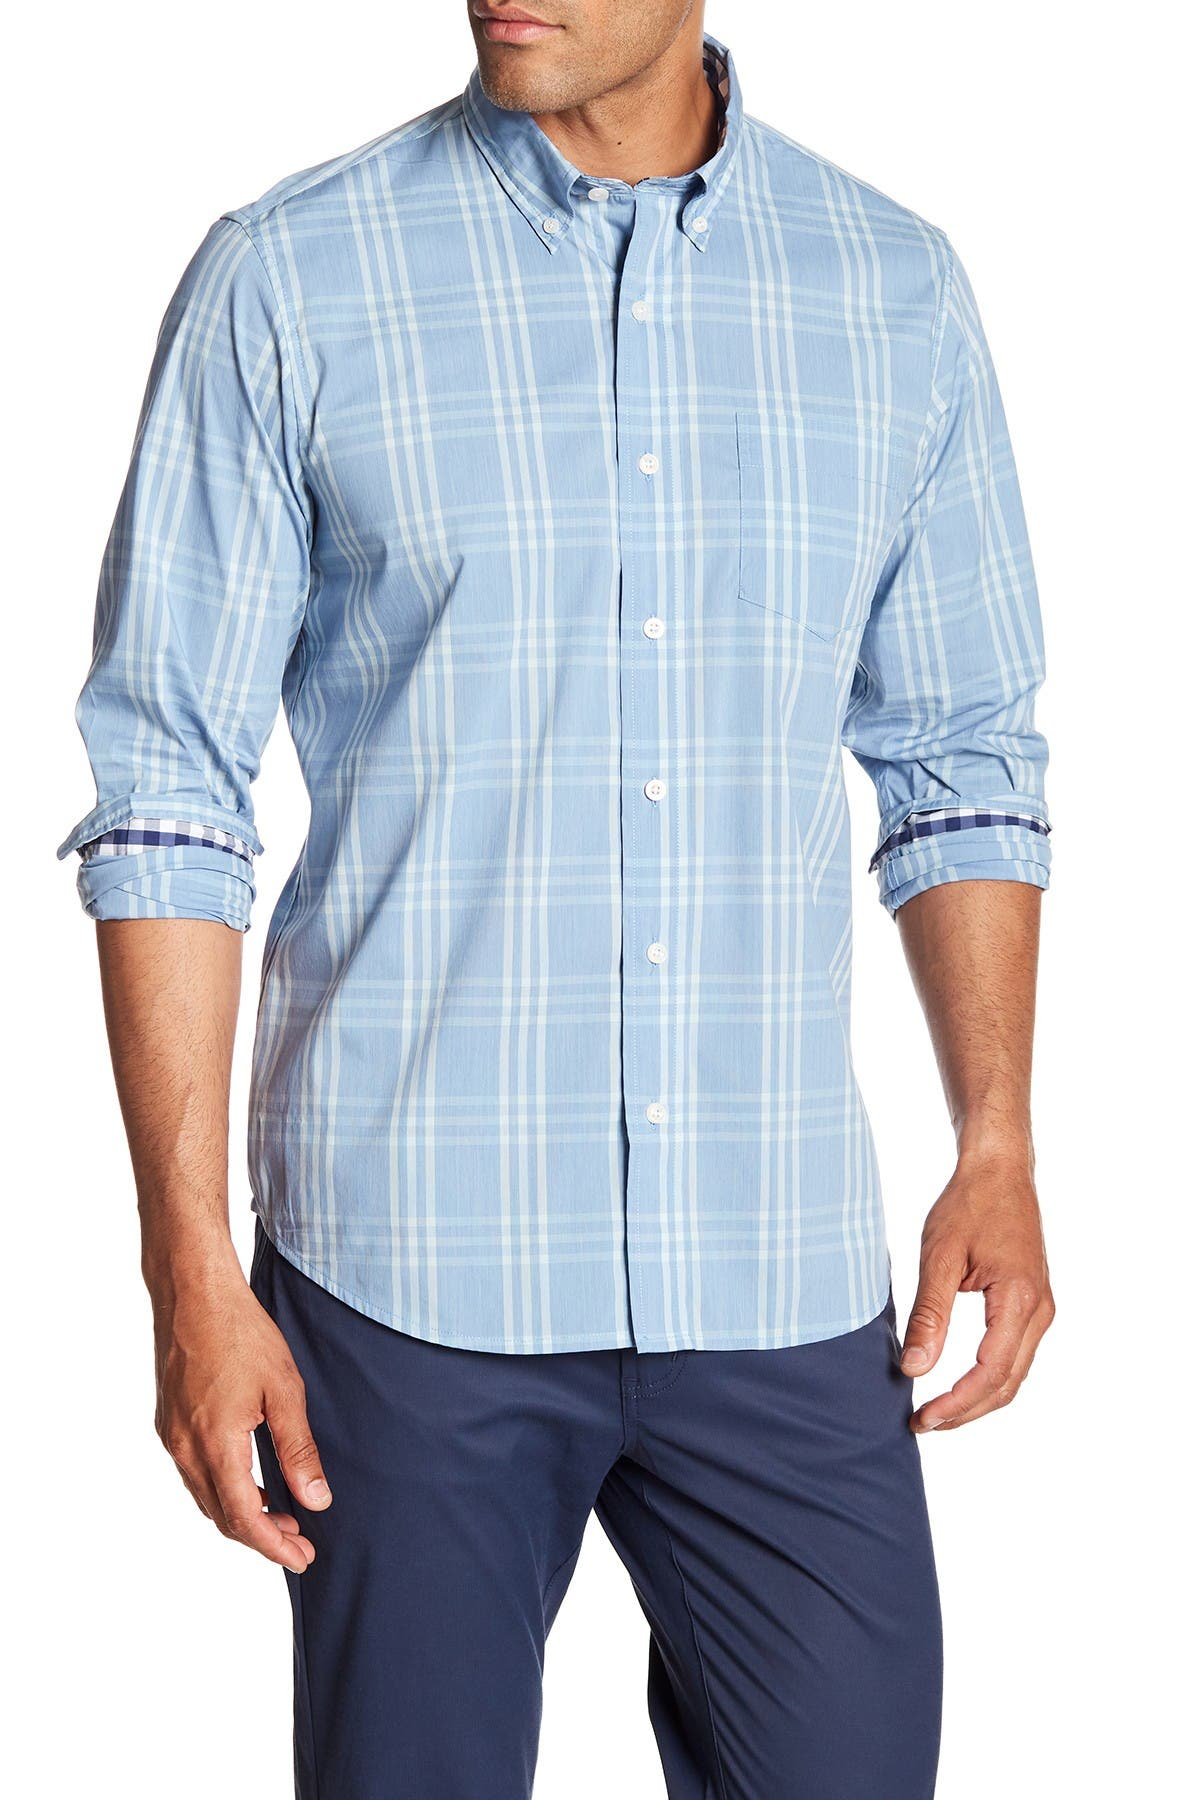 Image of Tailor Vintage Plaid Long Sleeve Stretch Fit Shirt